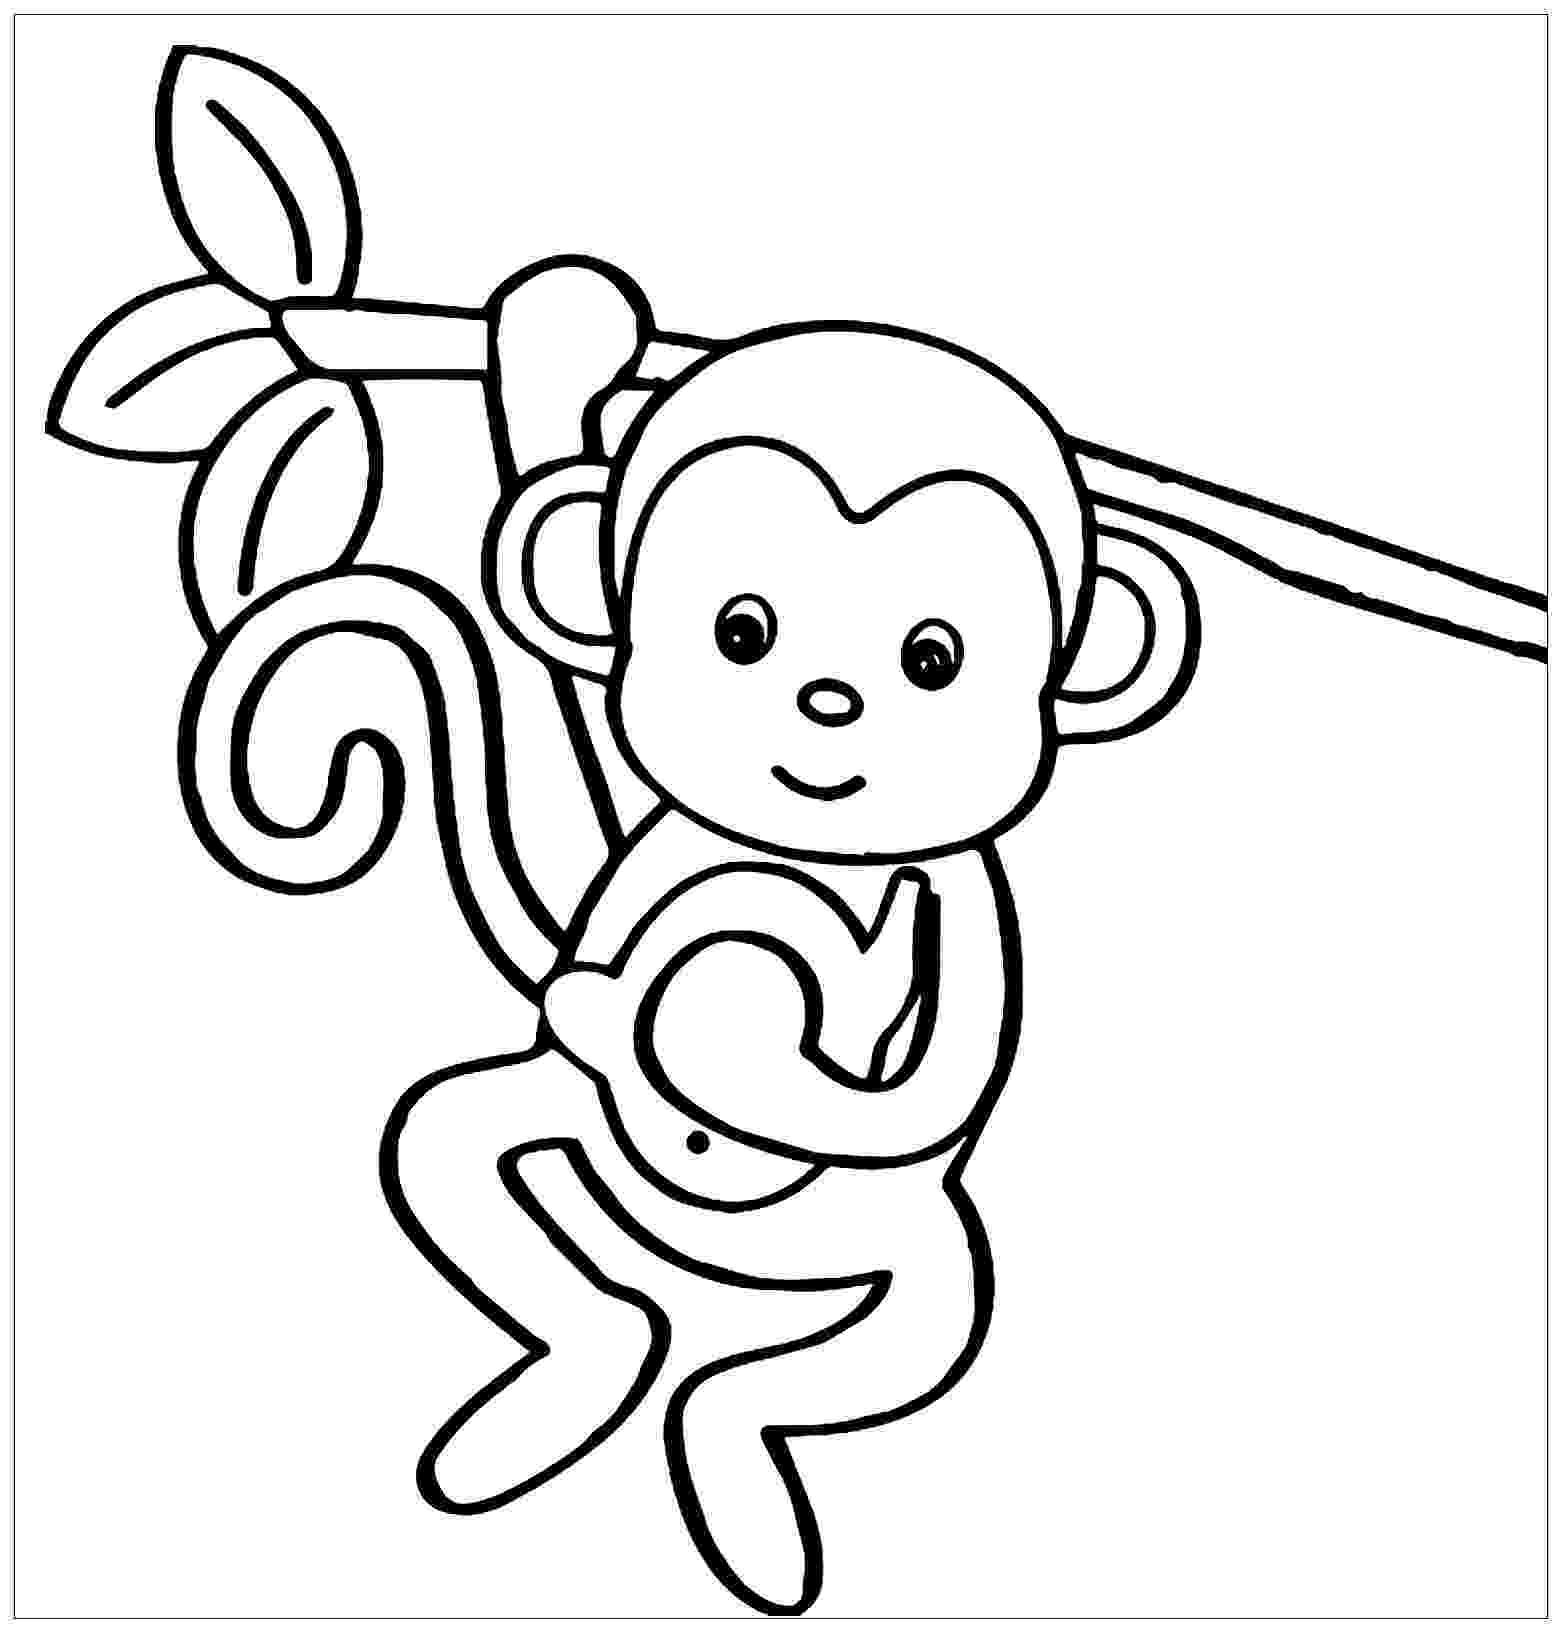 monkeys coloring pages free printable monkey coloring page with images monkey coloring monkeys pages